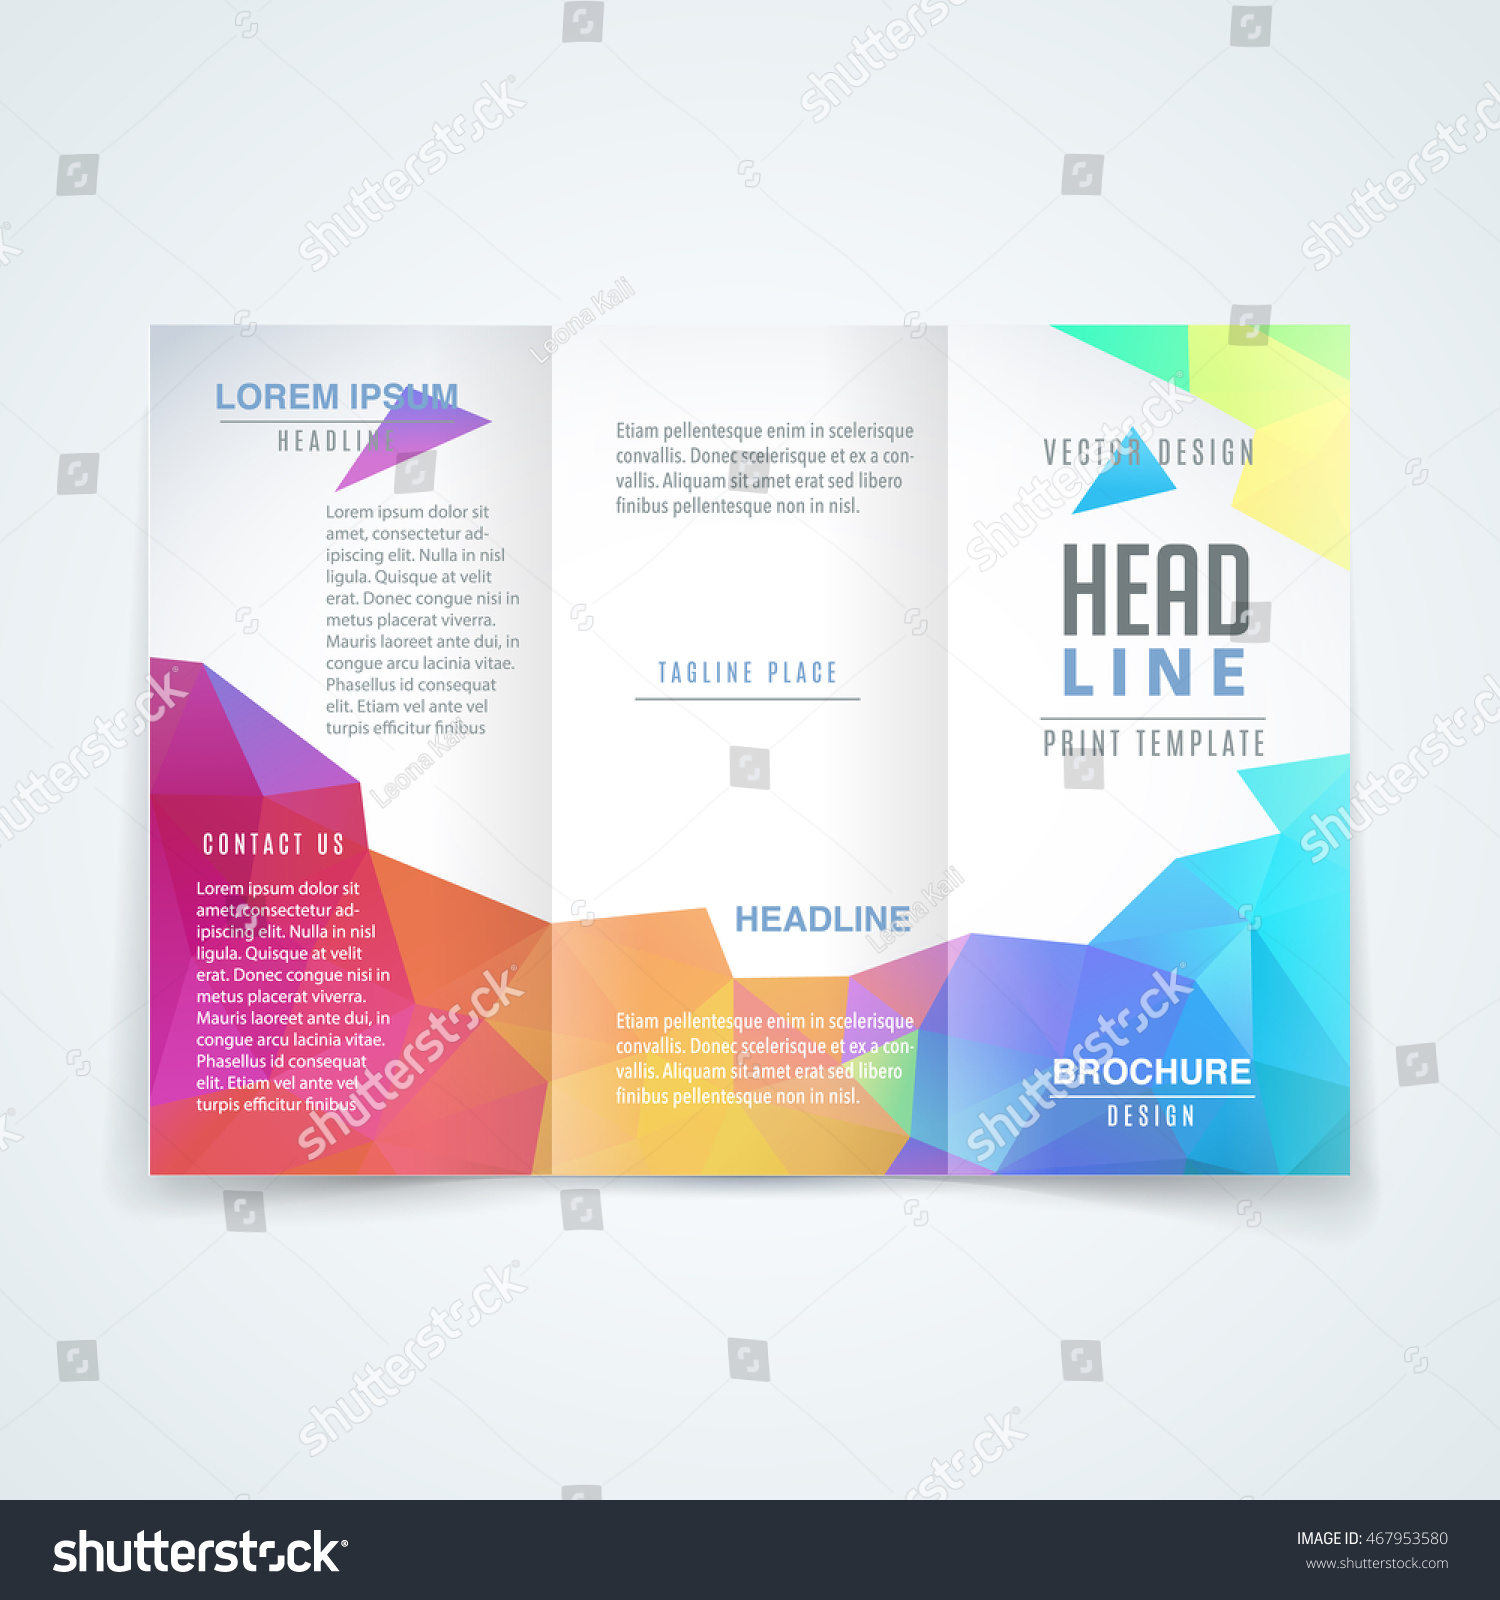 Best brochure design lx91 regardsdefemmes for Tri fold brochure design templates